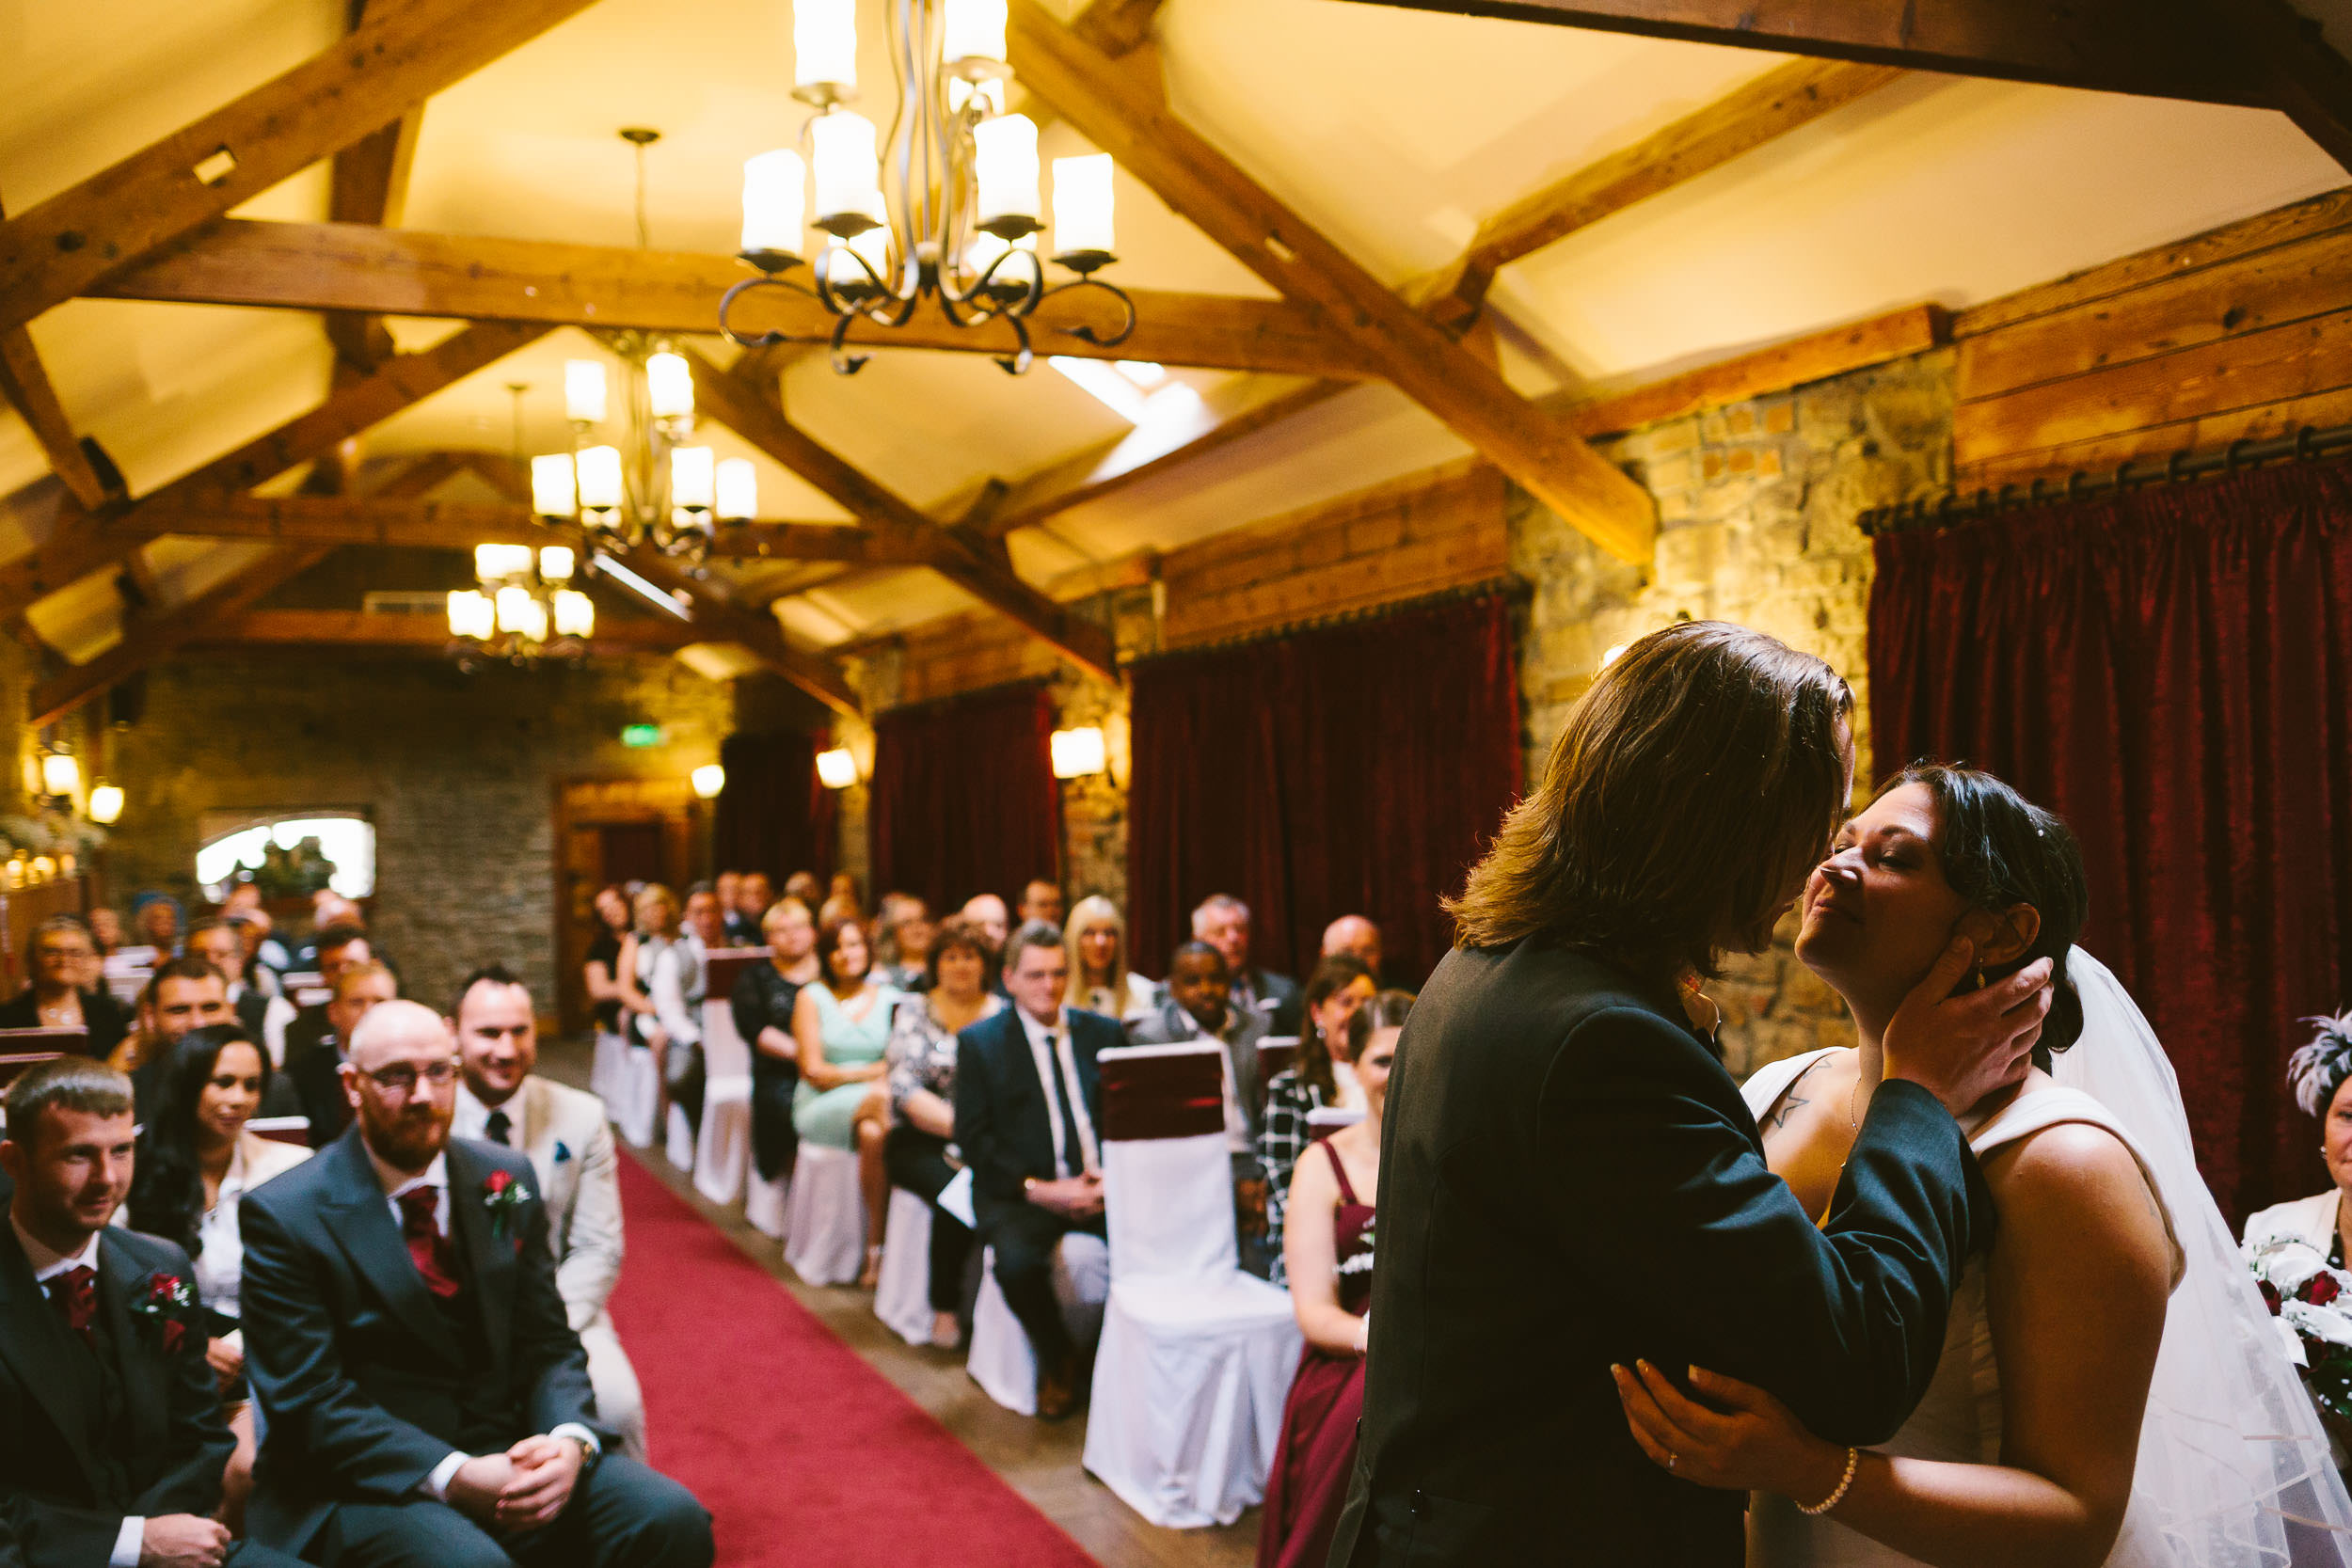 Bride and groom kiss during wedding ceremony with guests watching